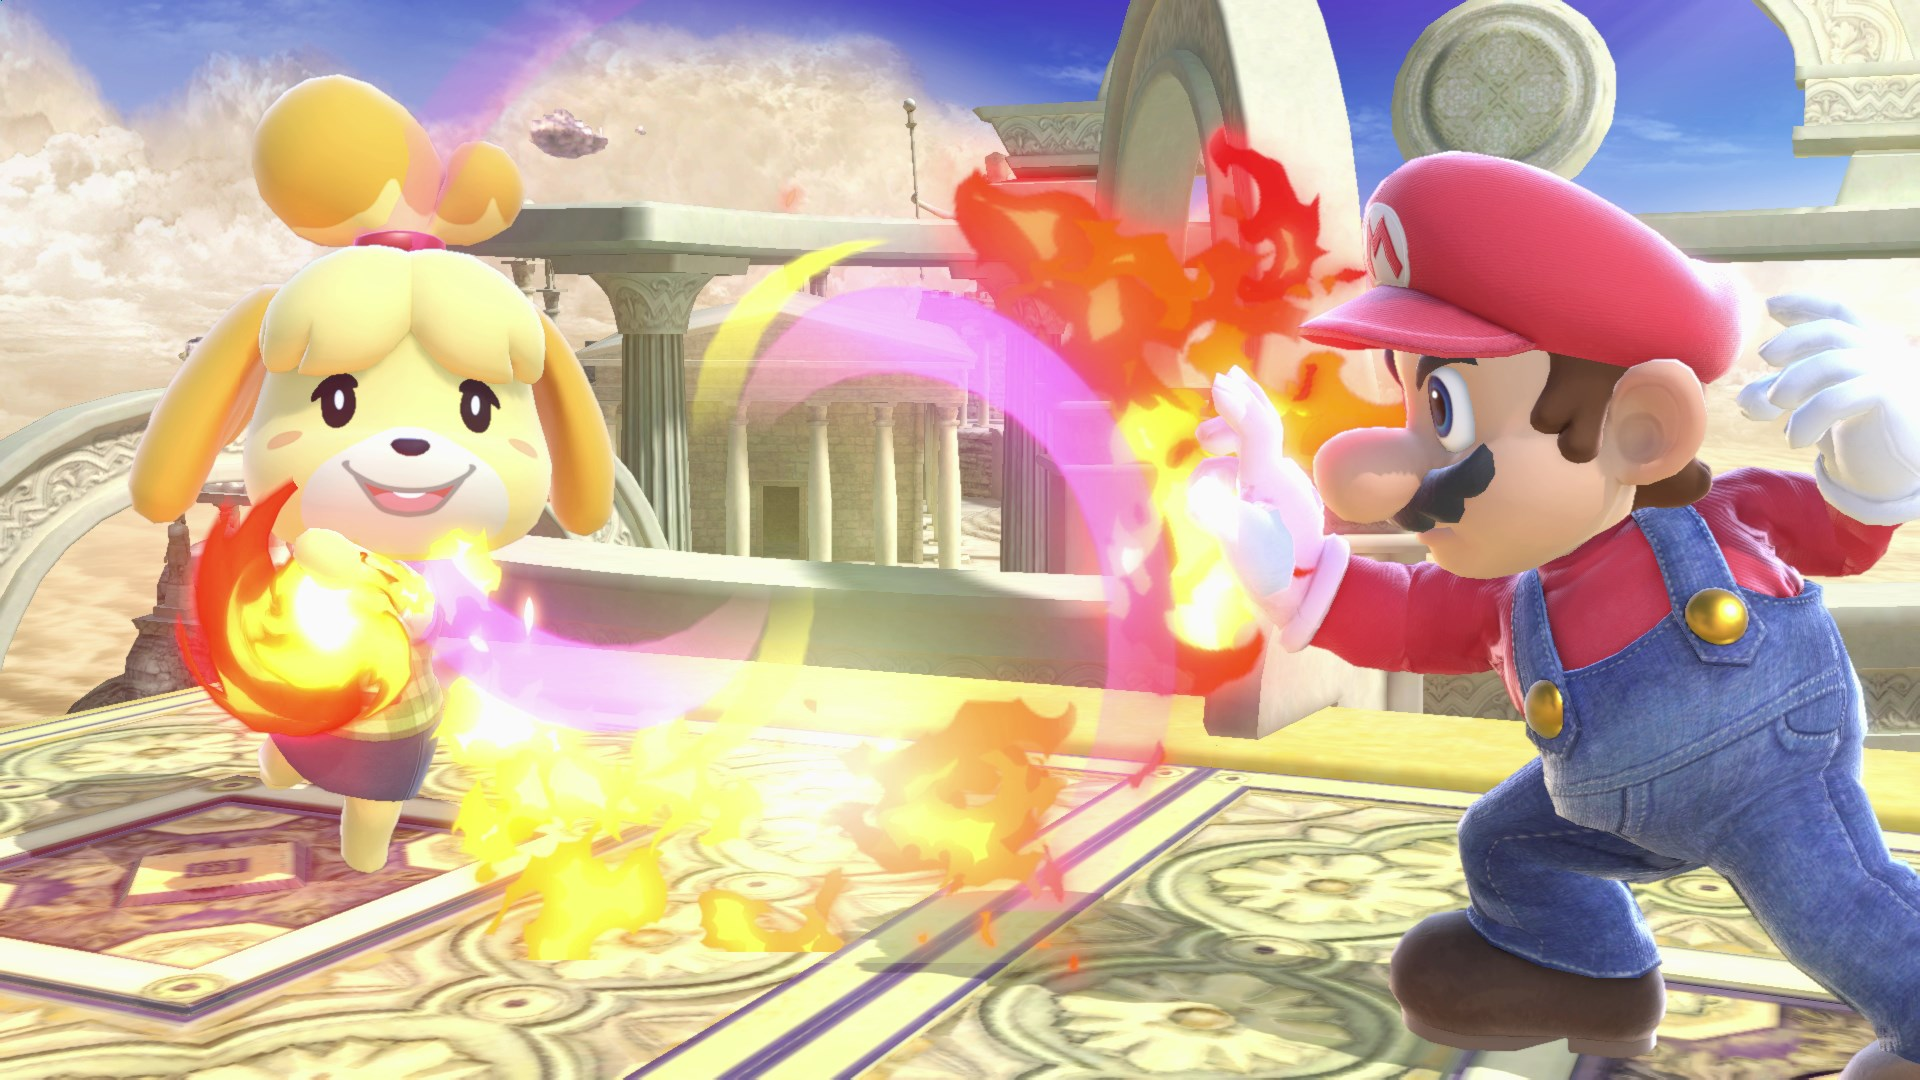 New Smash Bros. character coming in Nintendo Direct this week